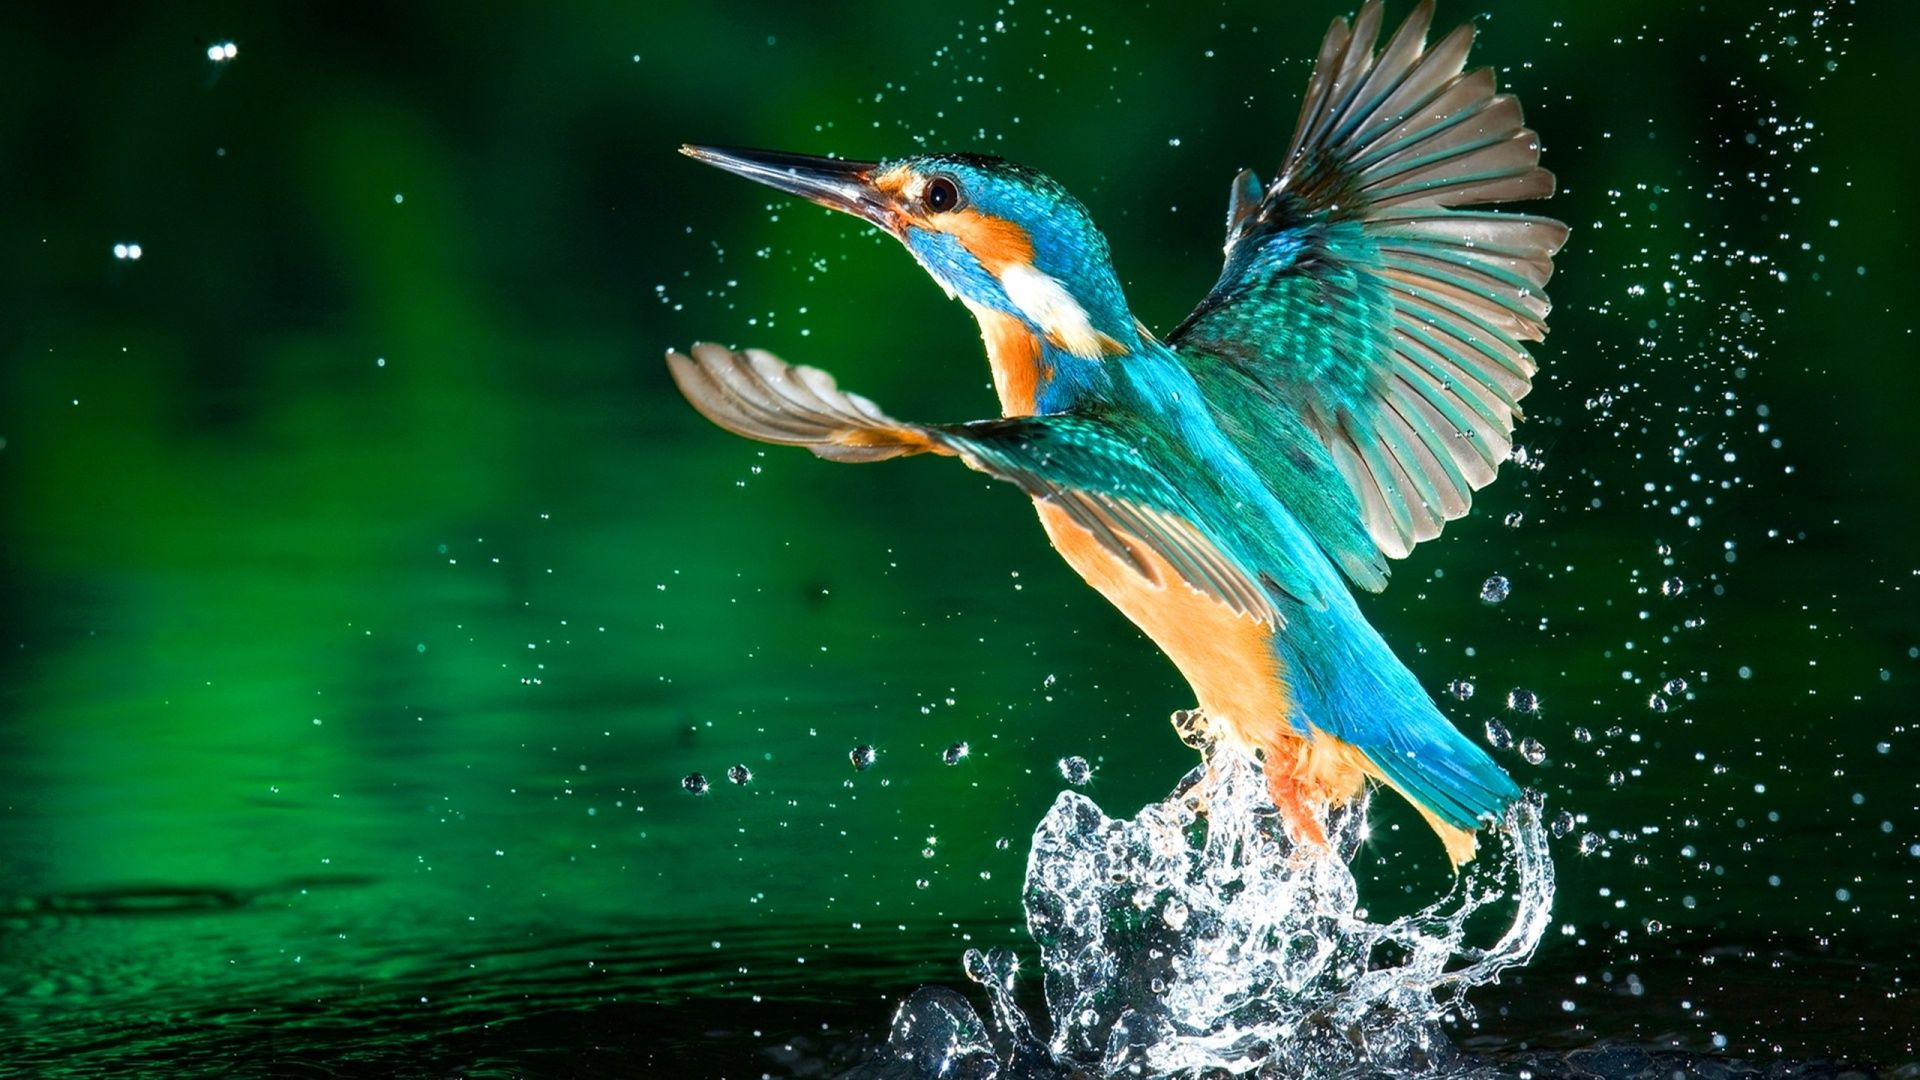 kingfisher bird hd wallpapers free download 1080p Birds